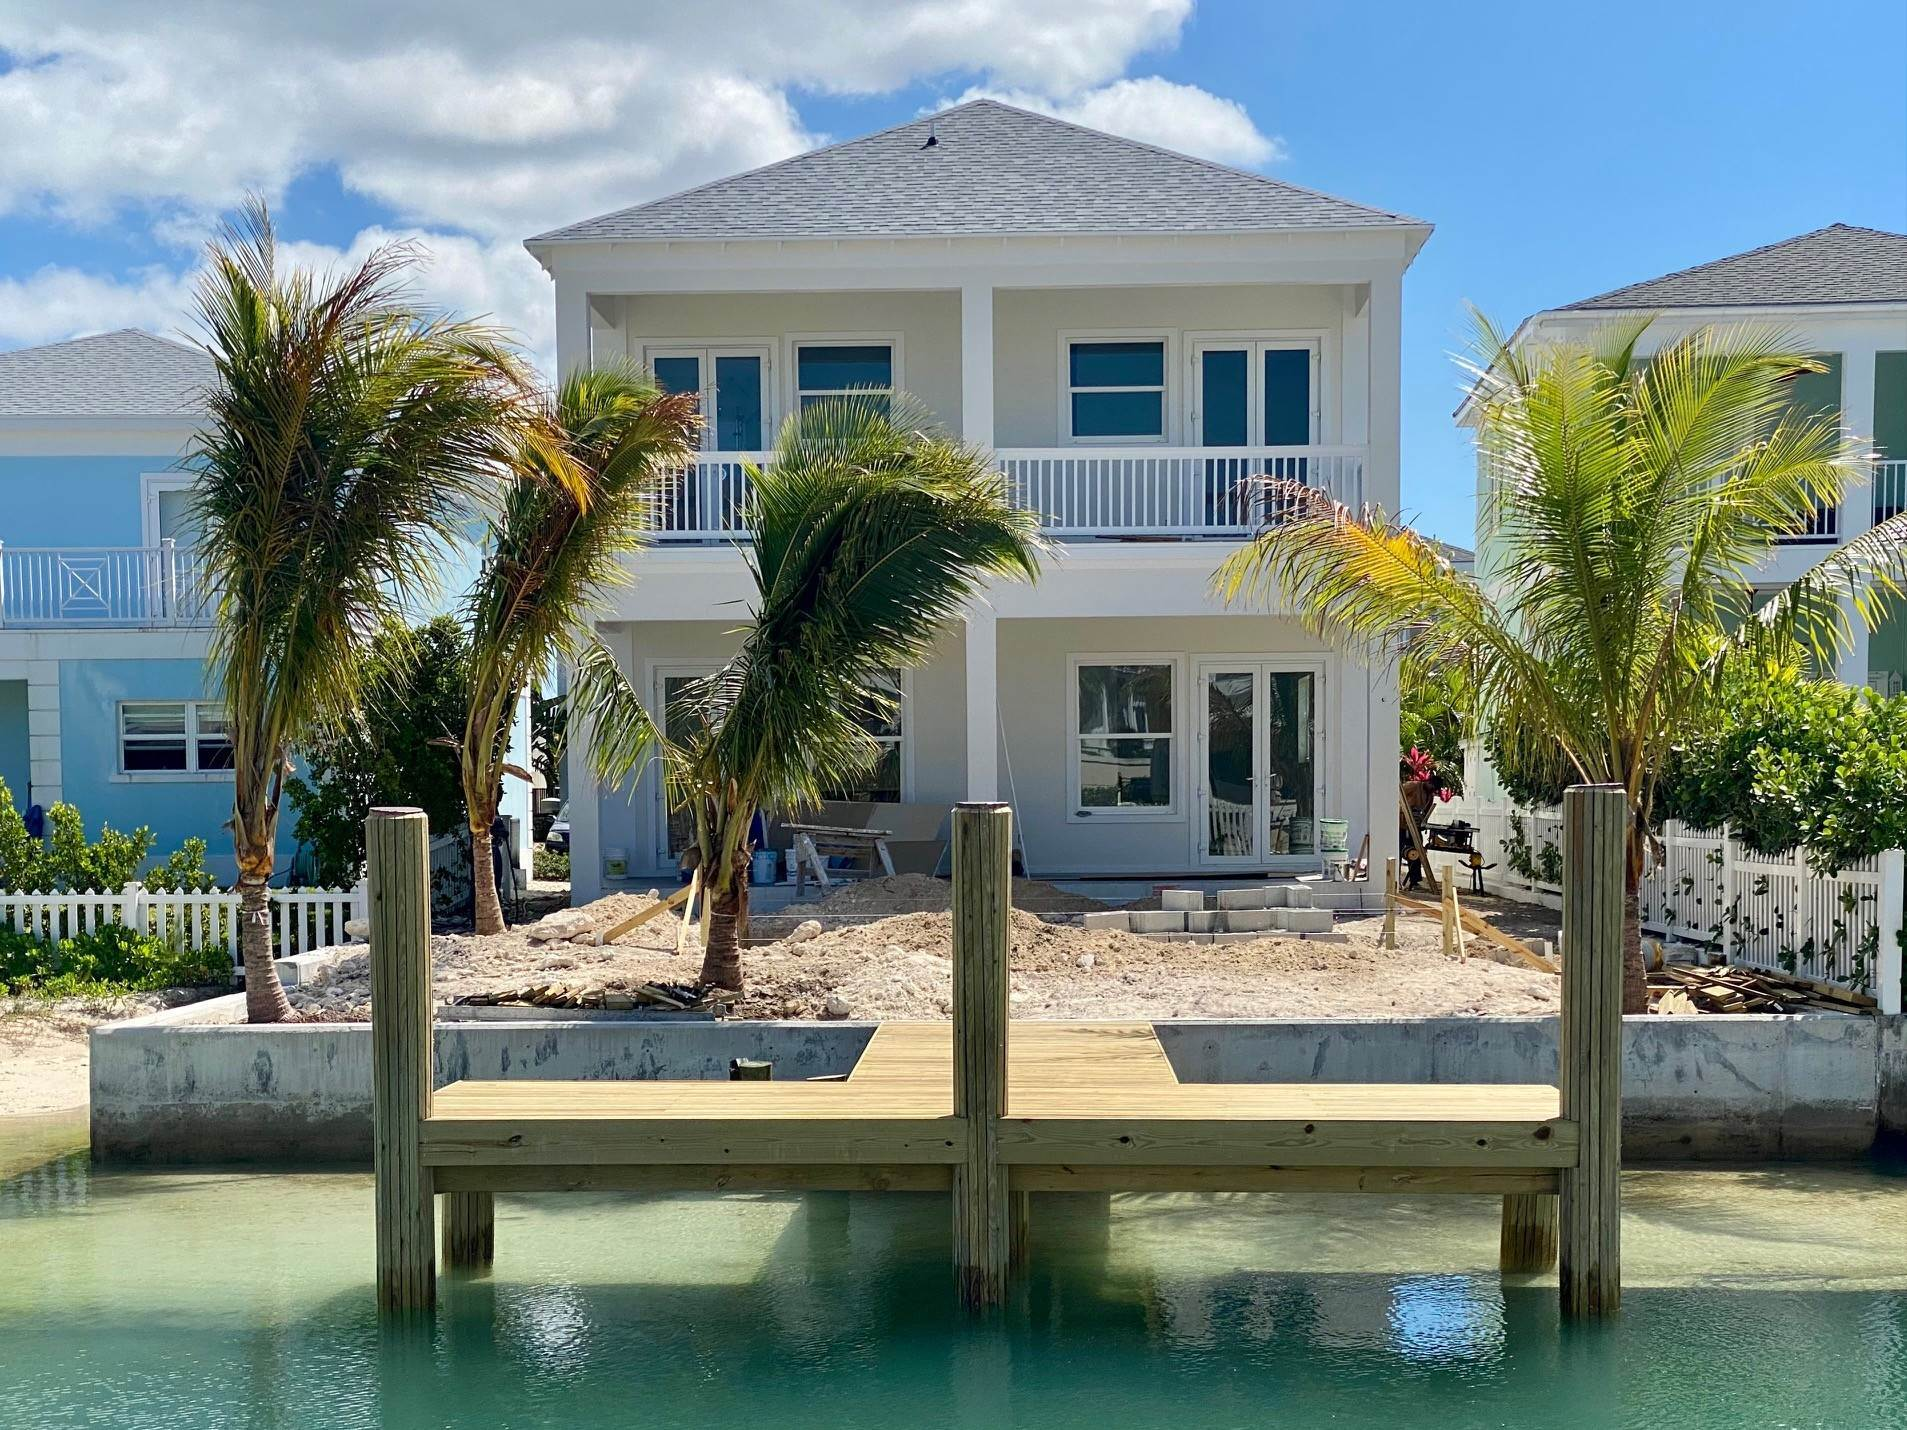 Single Family Homes for Sale at Grand Contemporary Home in Sandyport - MLS 43963 Sandyport, Cable Beach, Nassau And Paradise Island Bahamas